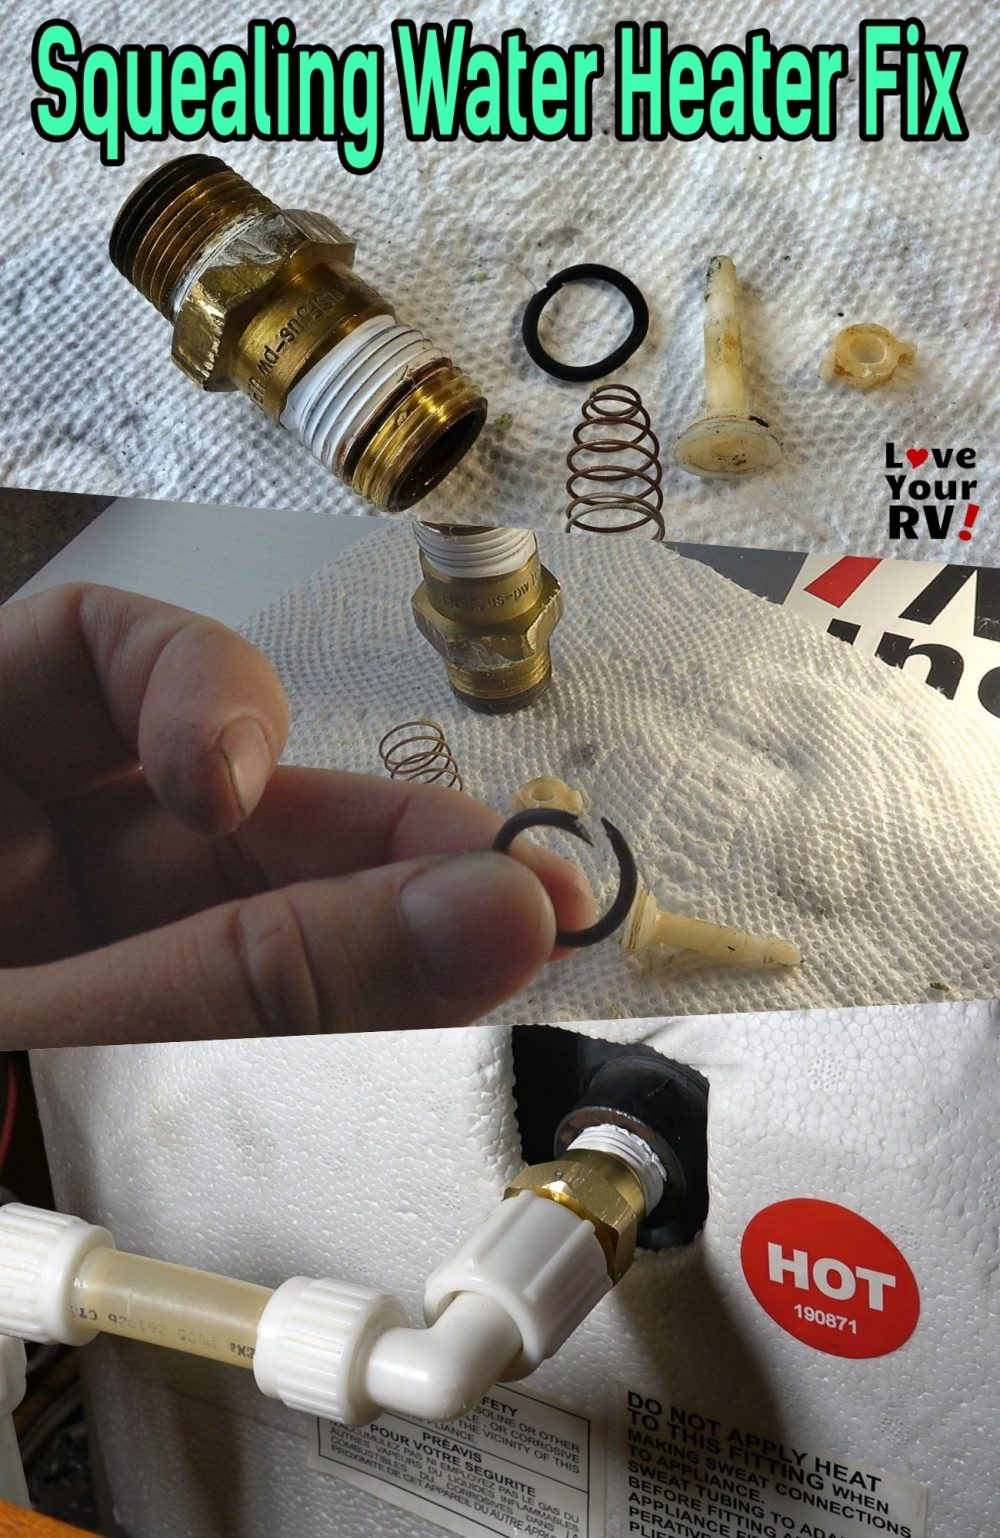 Fix for a Squealing RV Water Heater - Replaced faulty Check Valve with failed Rubber O-Ring